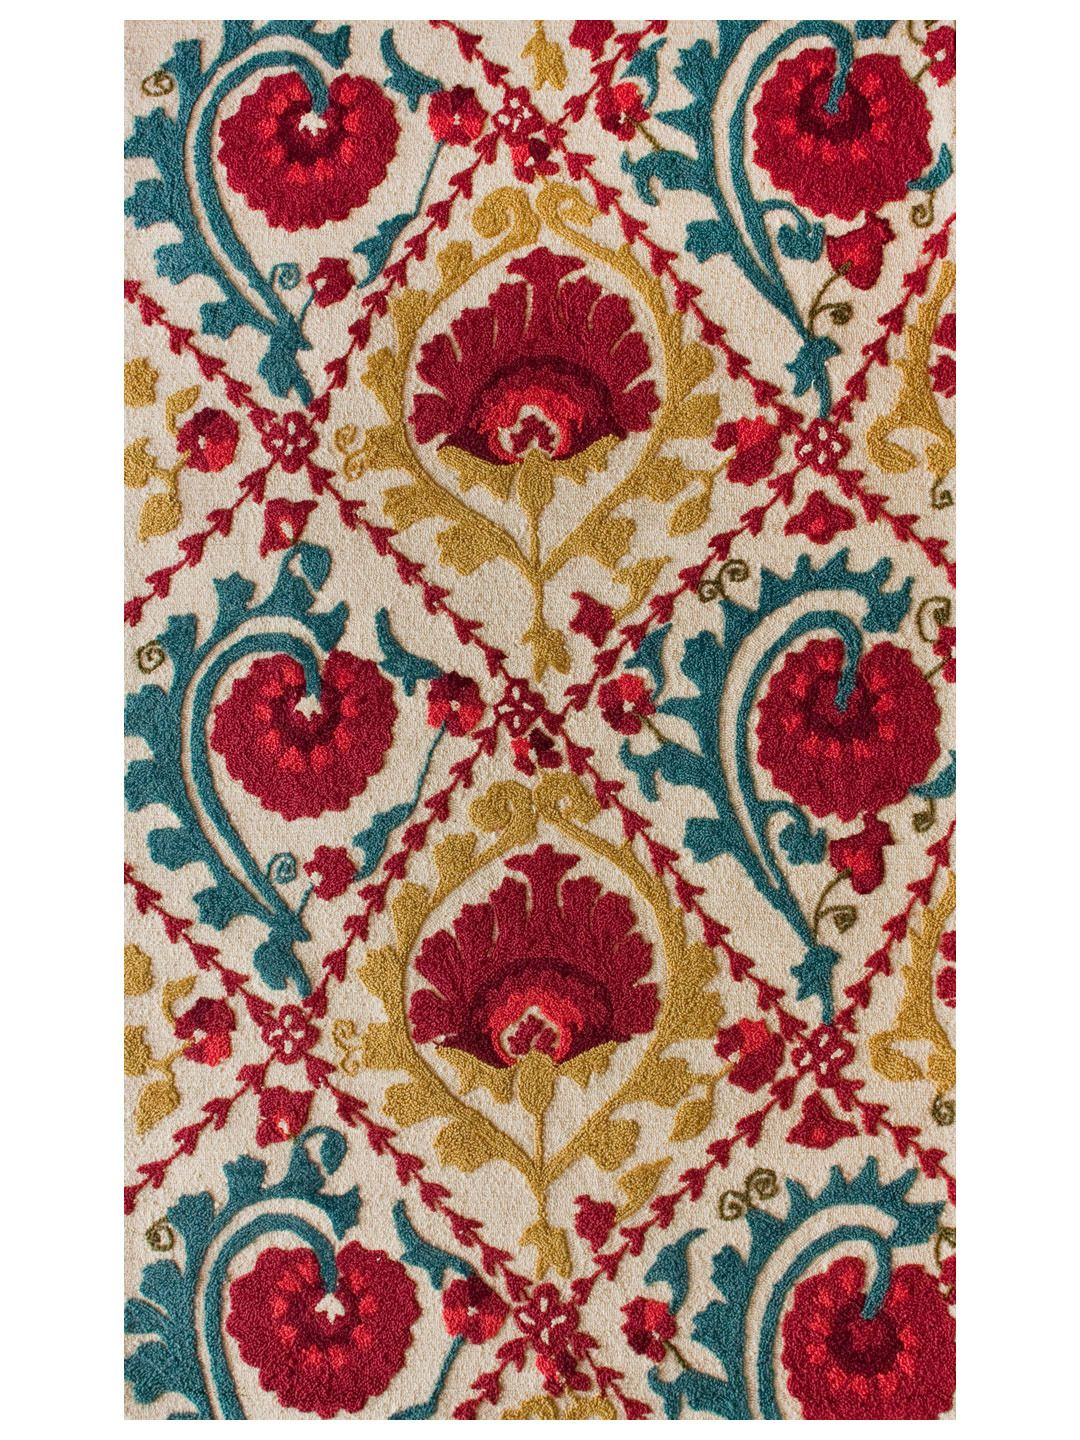 Seville Hand Tufted Rug In Mustard Turquoise And Red